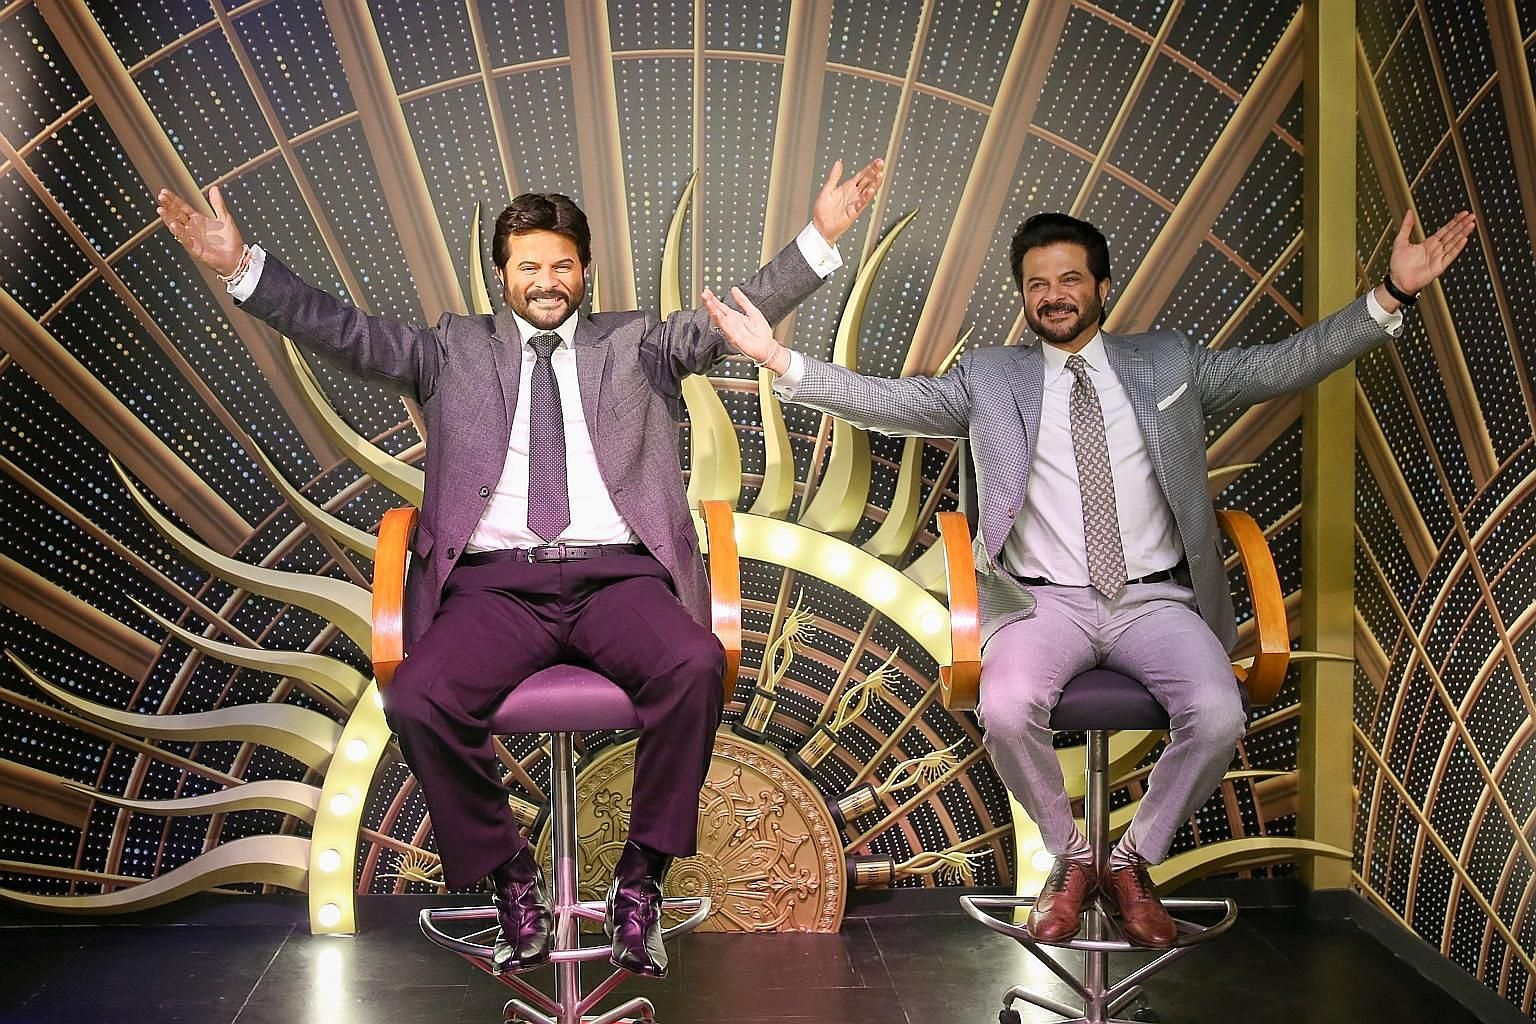 Bollywood star Anil Kapoor with a wax figure (left) of his character in Slumdog Millionaire.